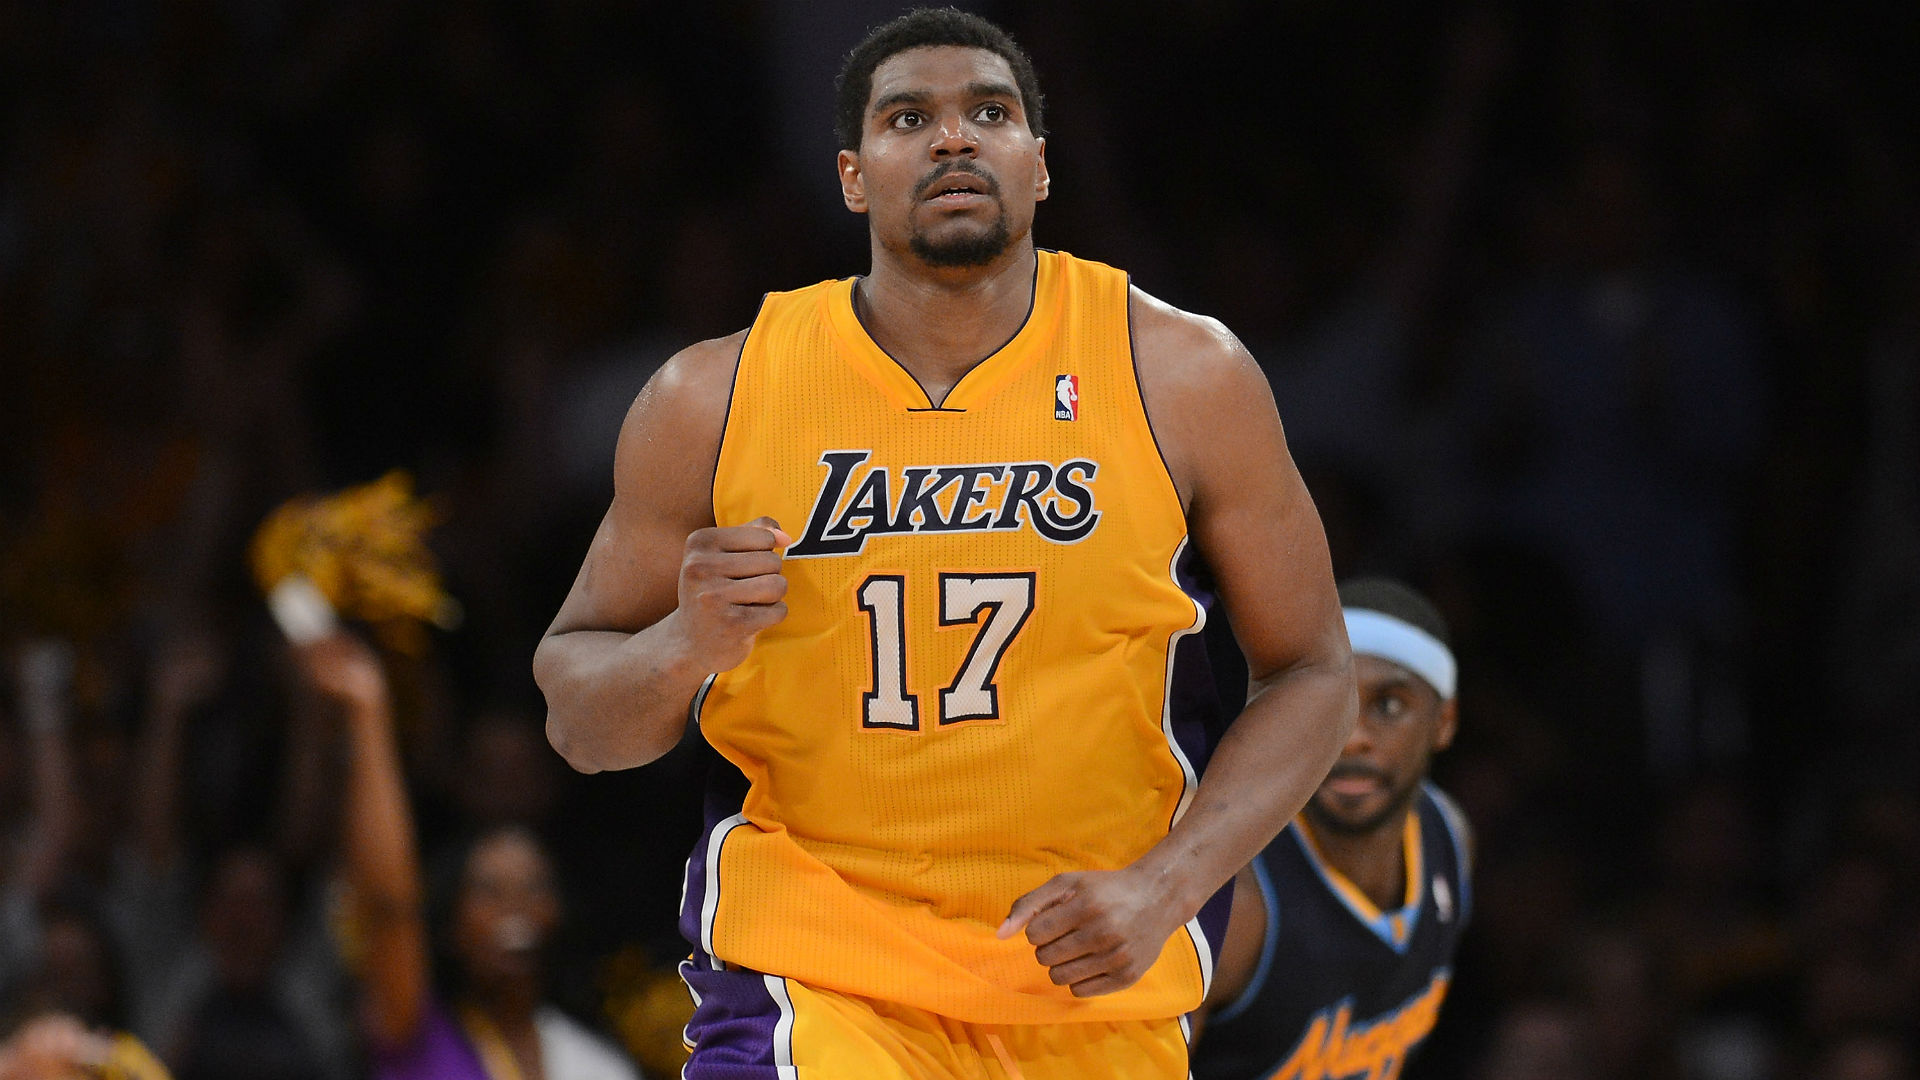 fa8ad39afc0 NBA free agency rumors: Former Lakers center Andrew Bynum attempting  comeback, scheduling workouts